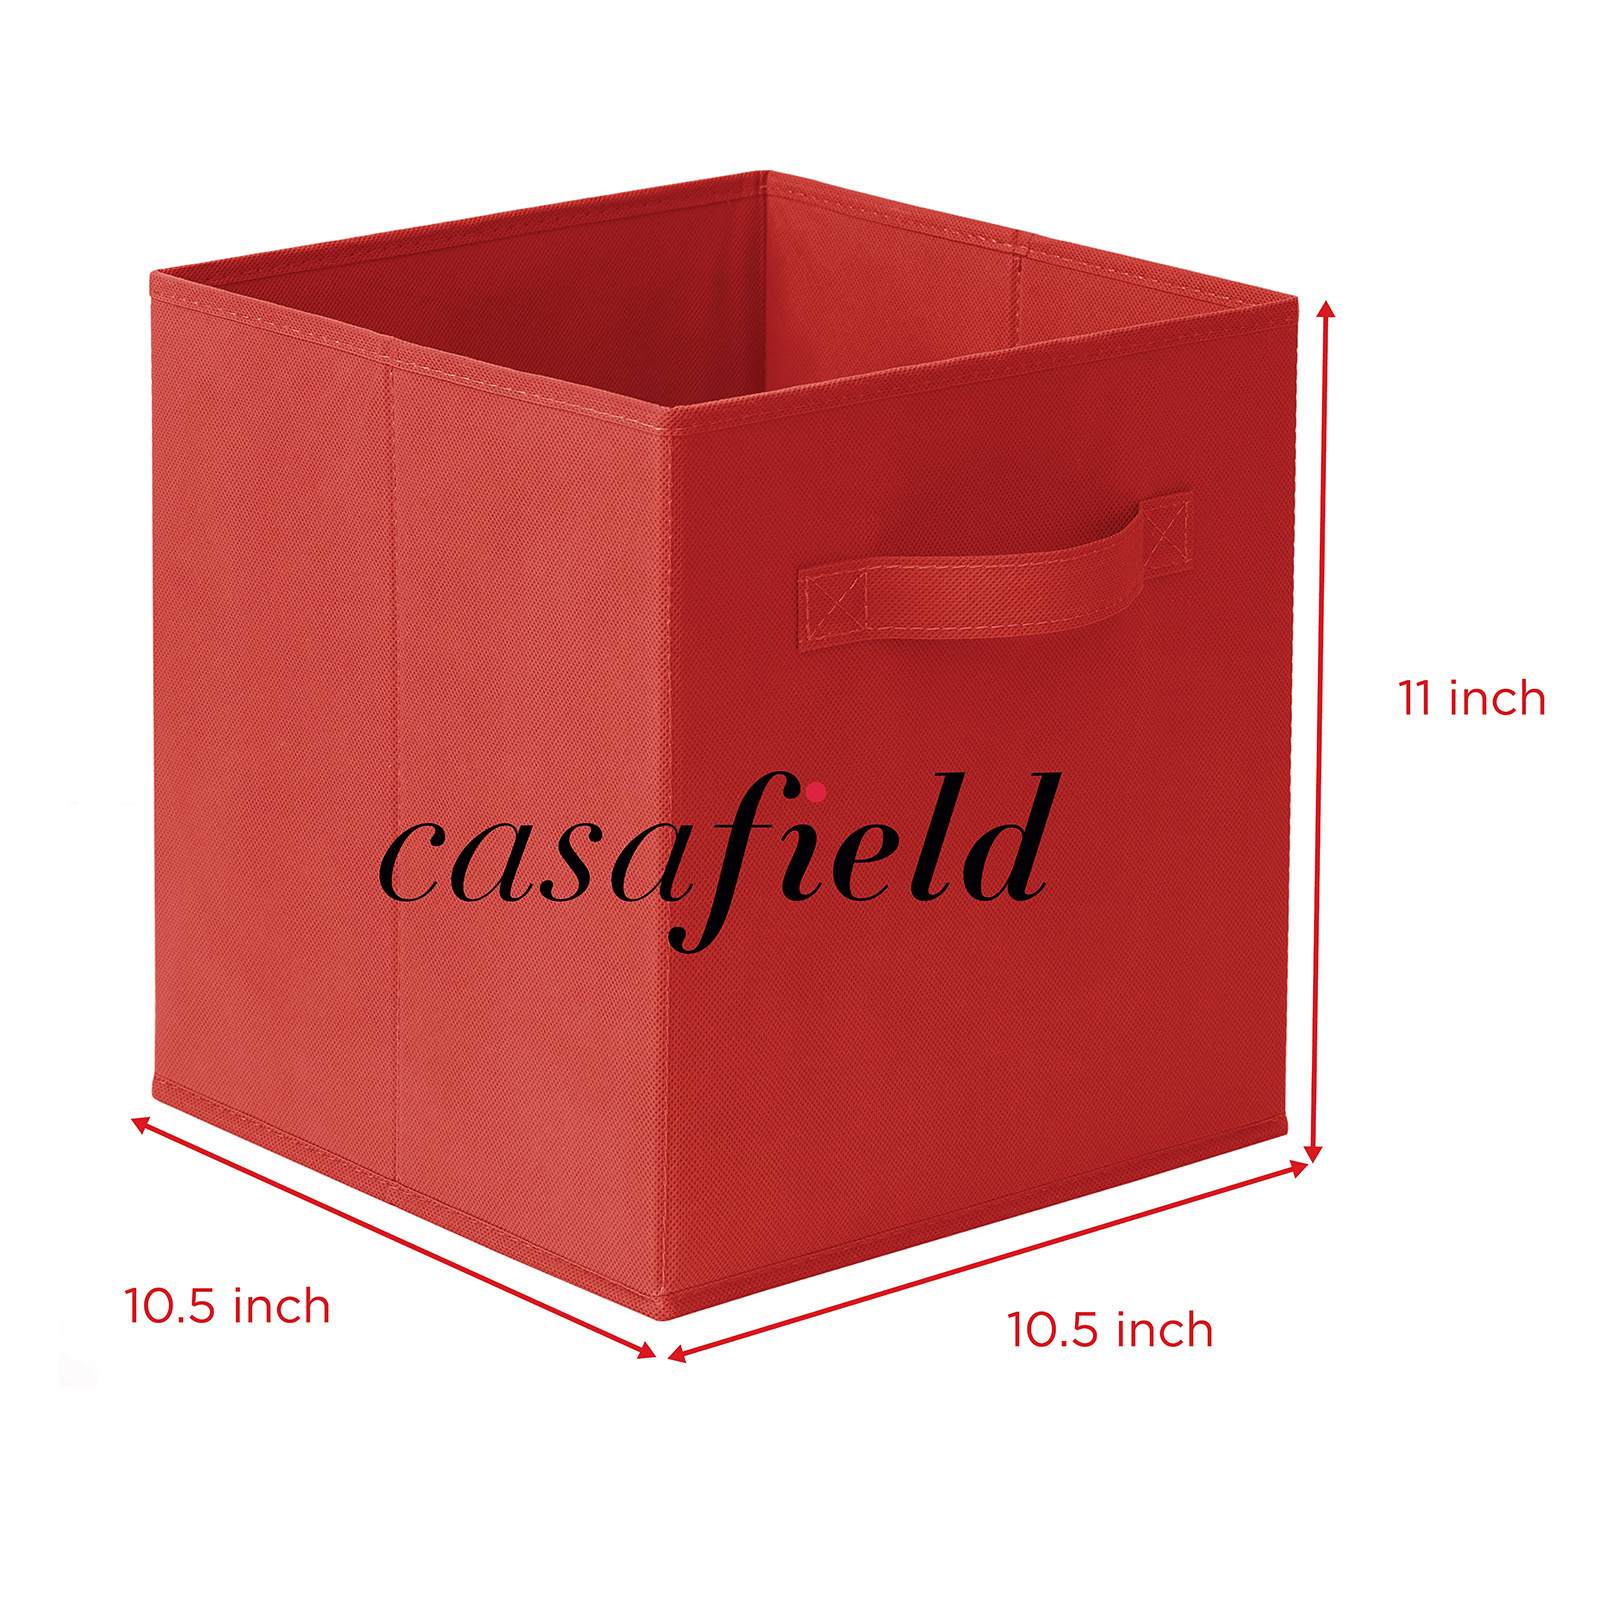 6-Collapsible-Foldable-Cloth-Fabric-Cubby-Cube-Storage-Bins-Baskets-for-Shelves thumbnail 68